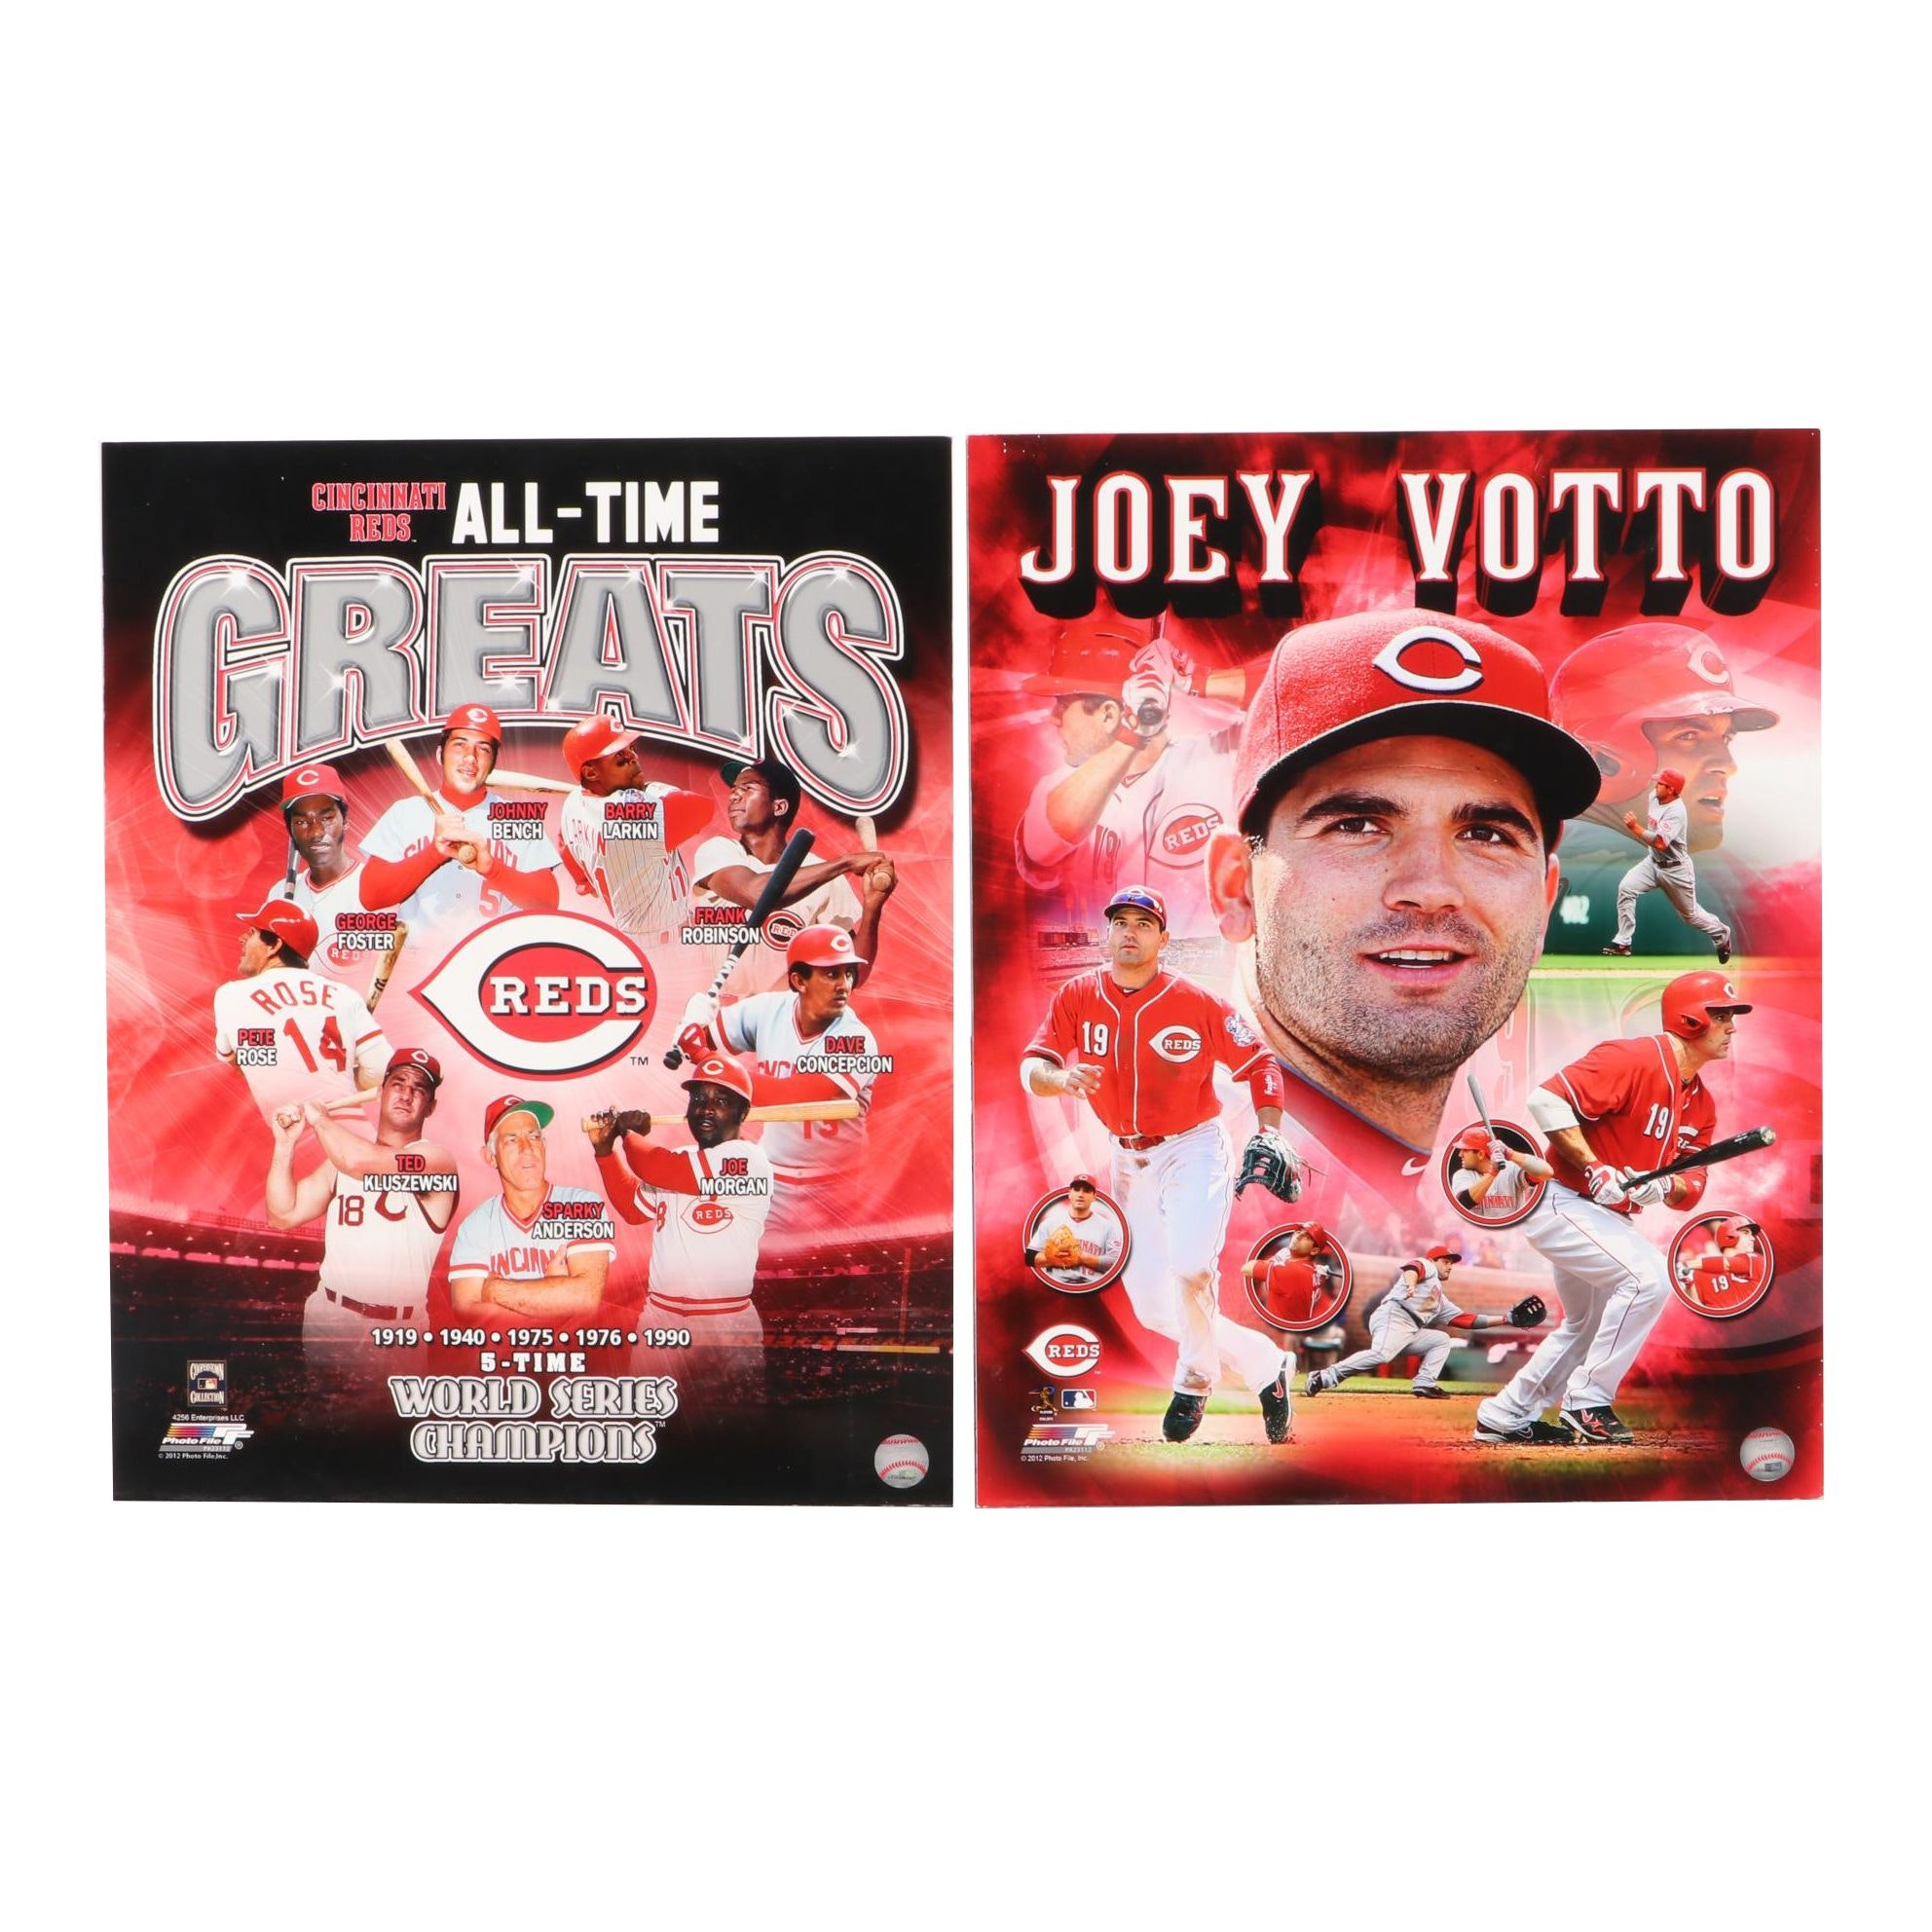 Two Cincinnati Reds, Joey Votto and All-Time Greats Wall Displays